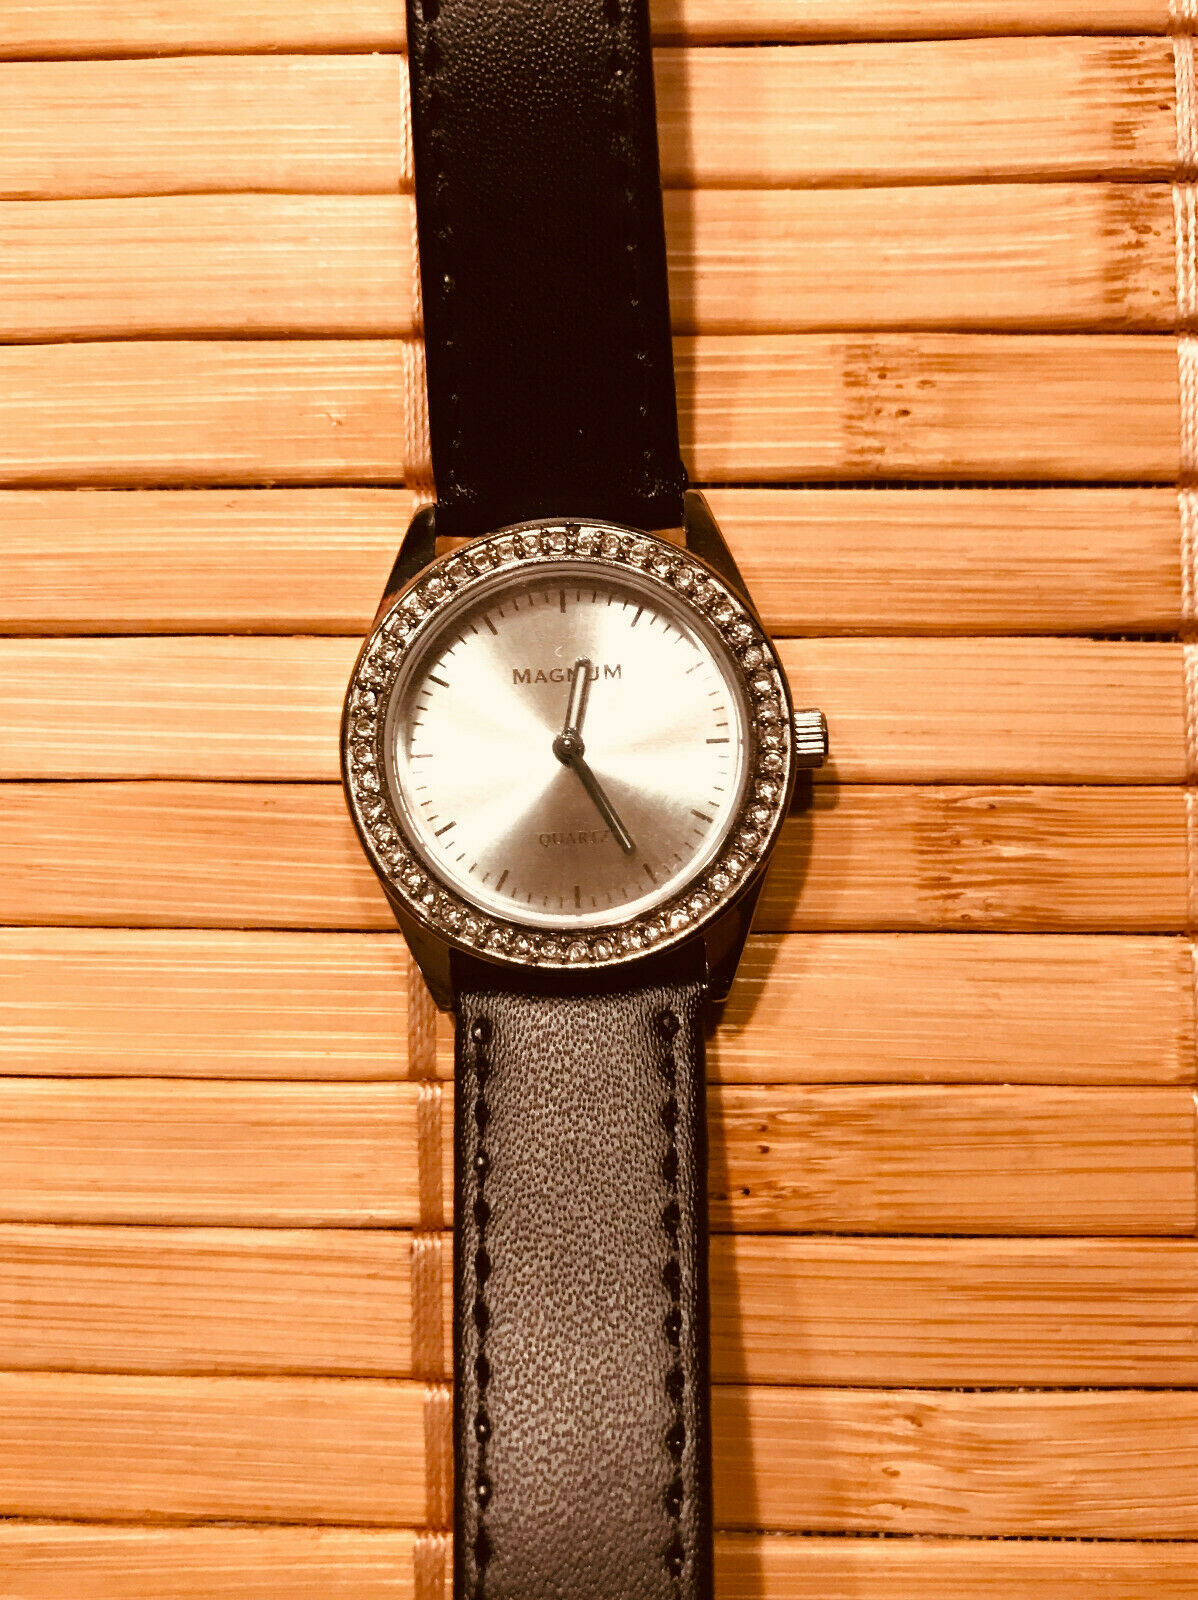 Magnum Stainless Steel Ladies Watch, Genuine Leather Band 16 MM, CHASSIS 29 MM